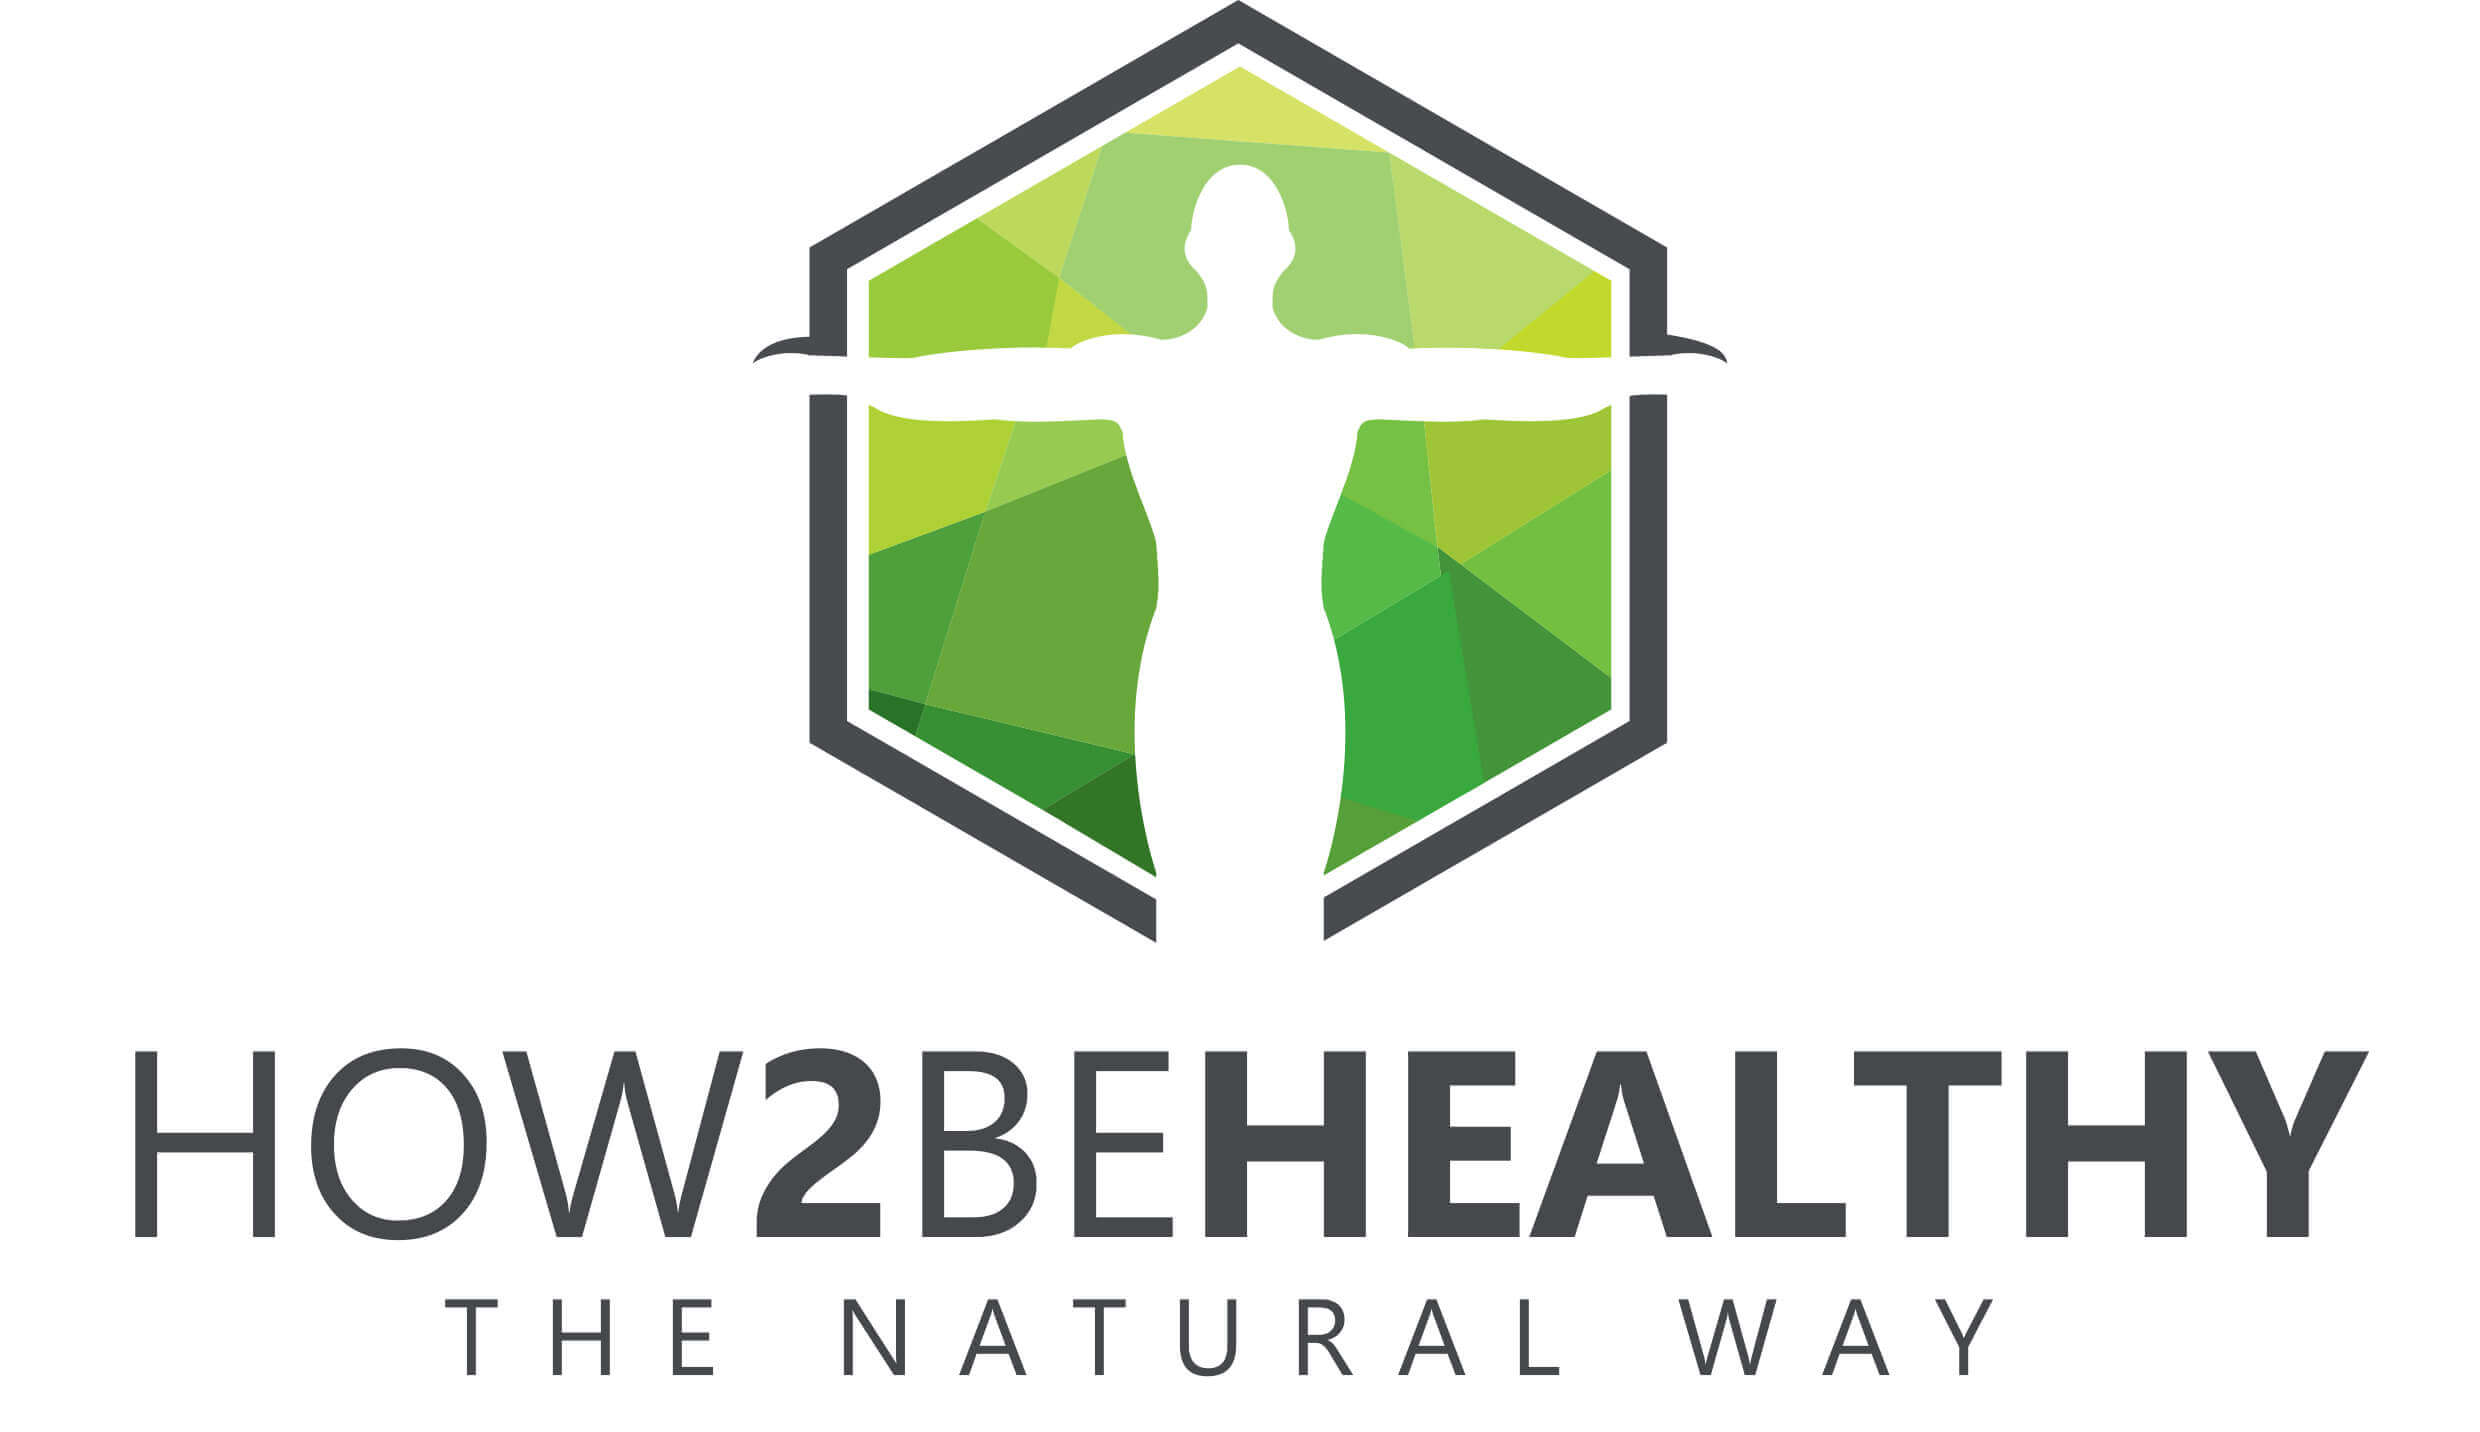 How 2 be healthy - Logo 1